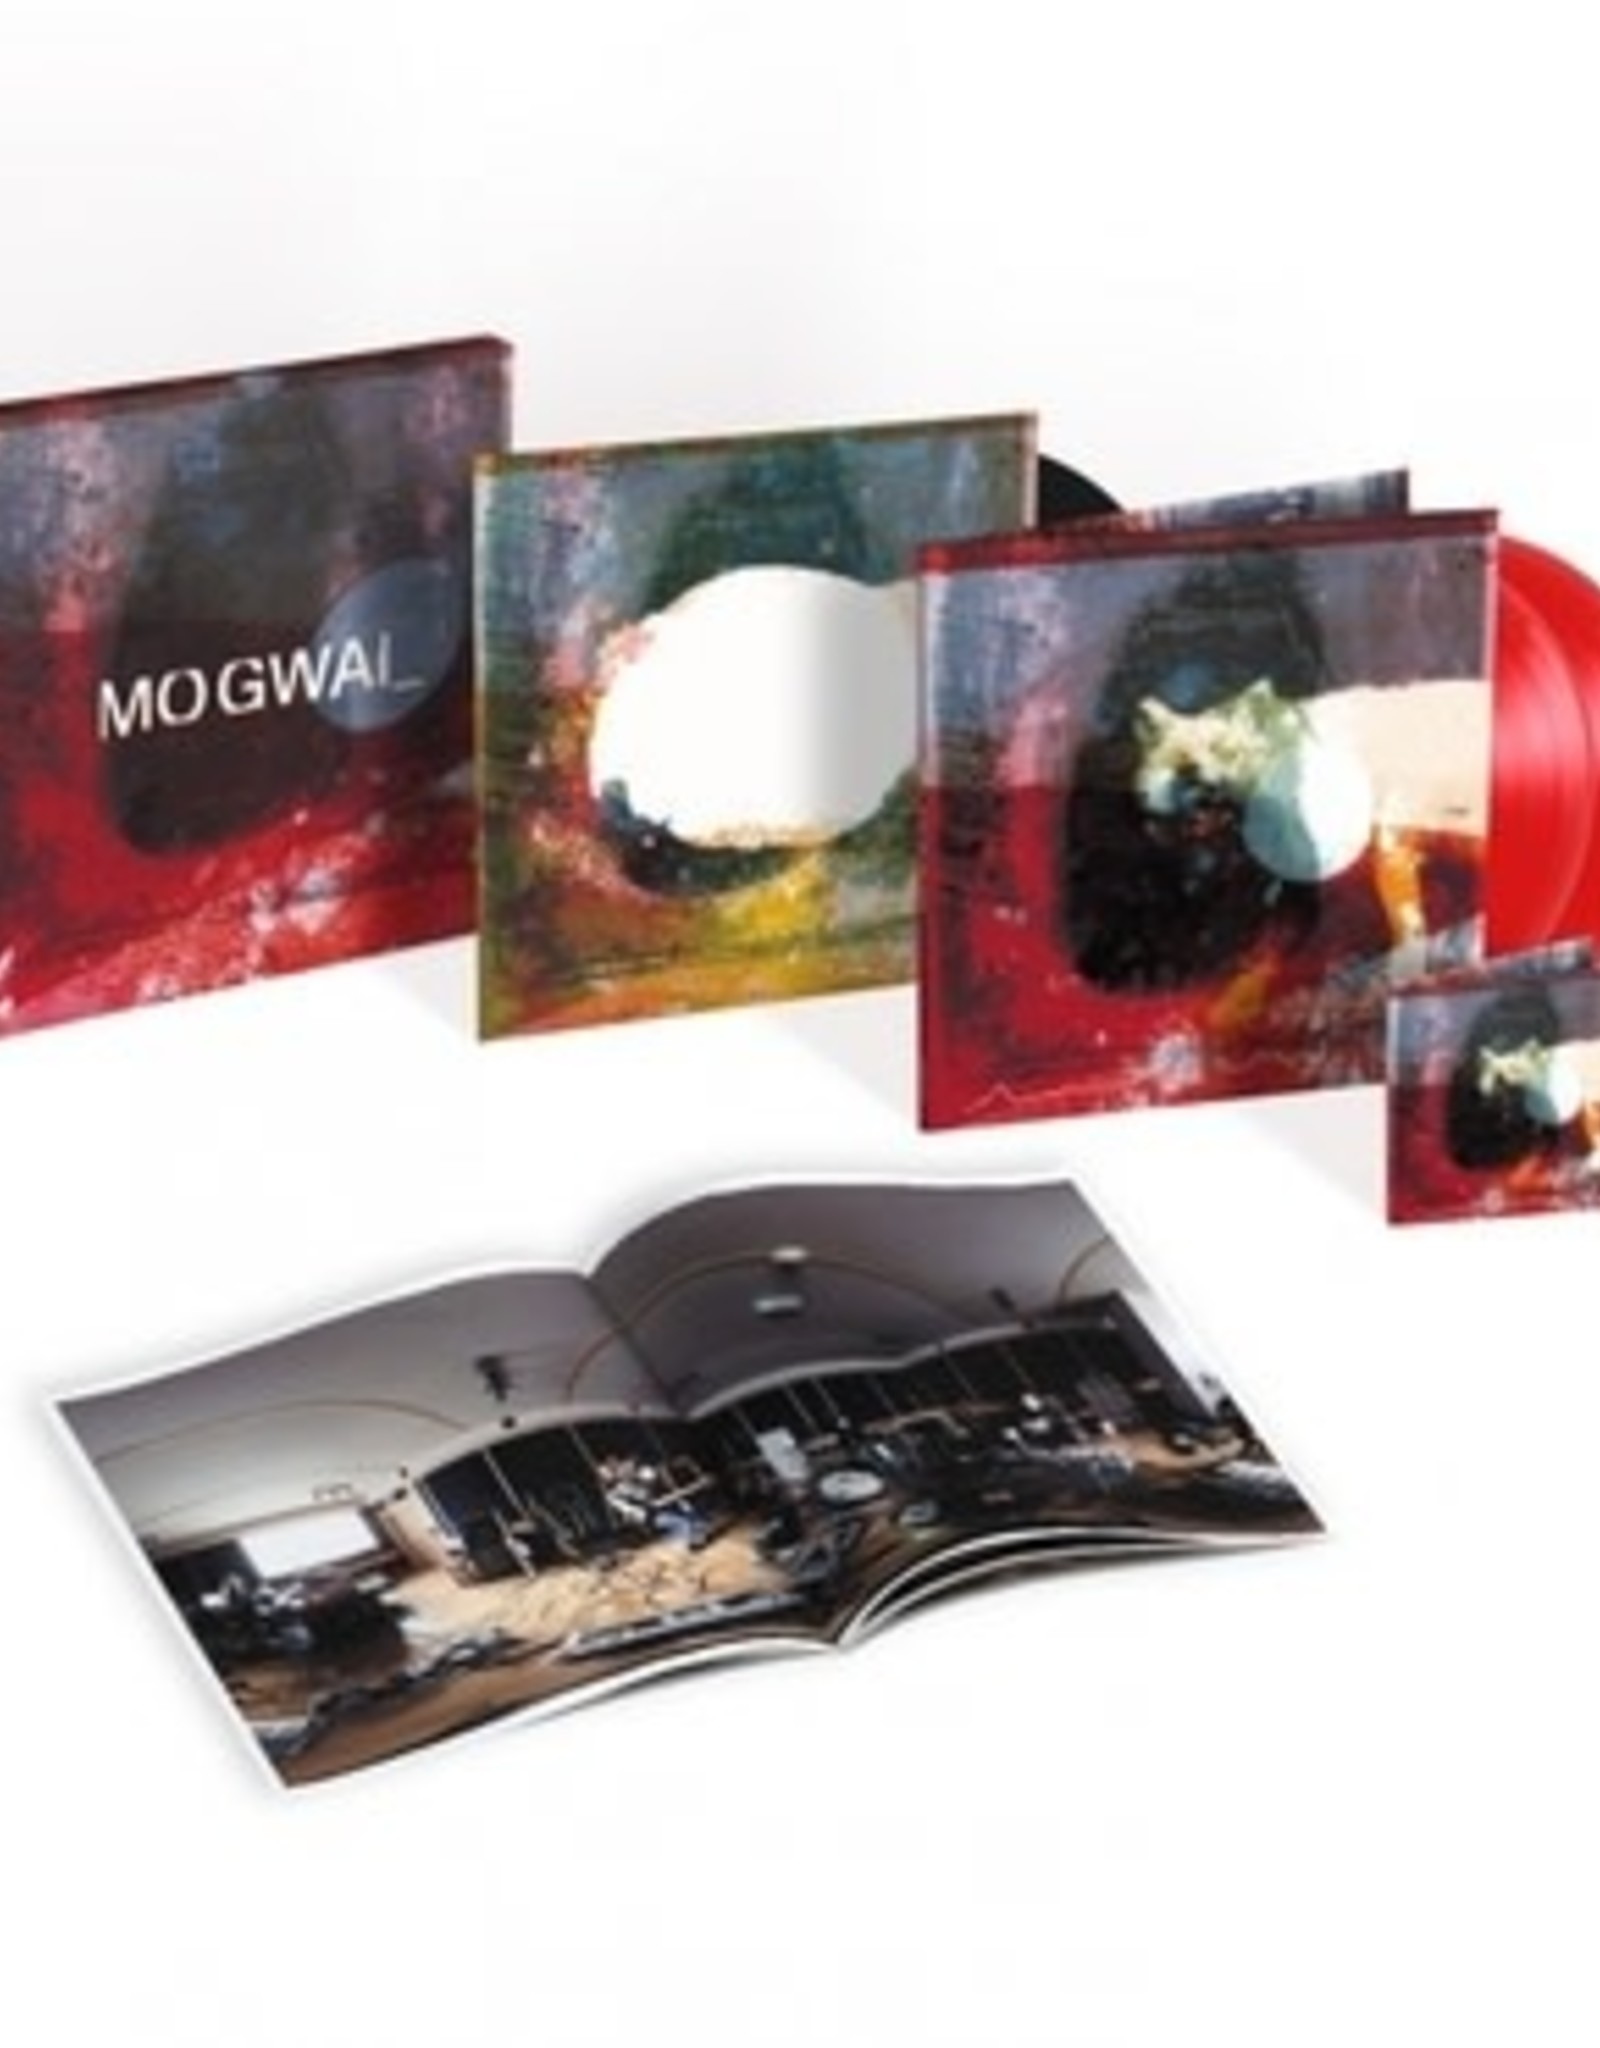 Mogwai - As the Love Continues (Deluxe Box Double Red Vinyl)